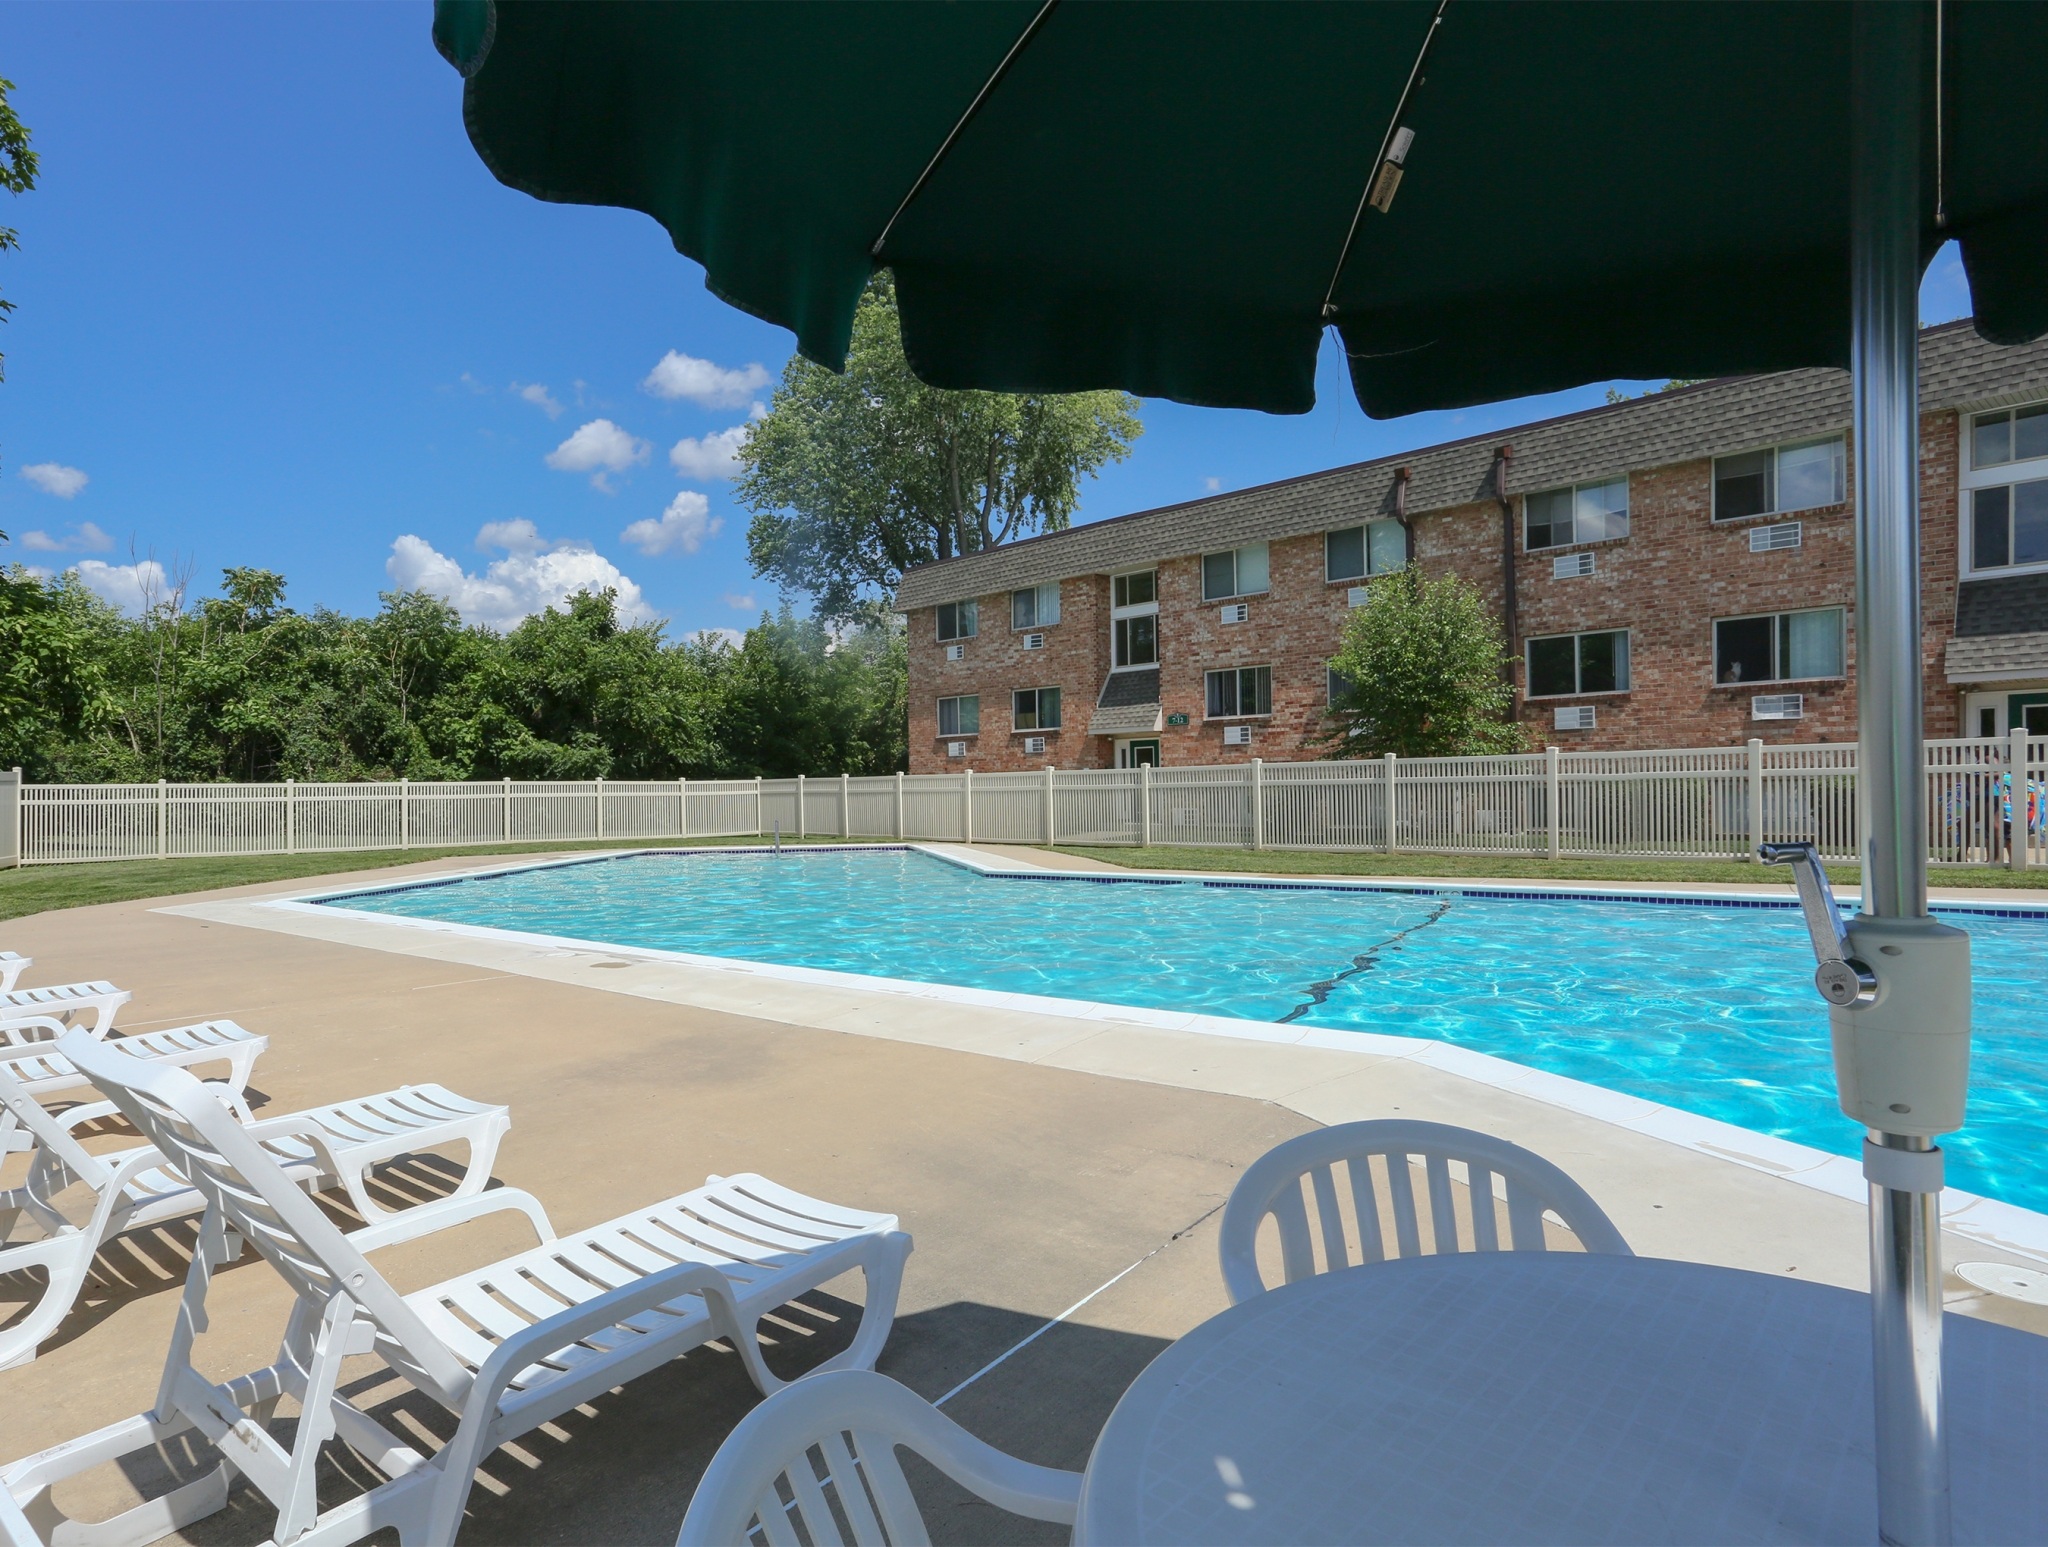 Mill Creek Village Swimming Pool with Umbrella Shade | Langhorne, PA Apartments